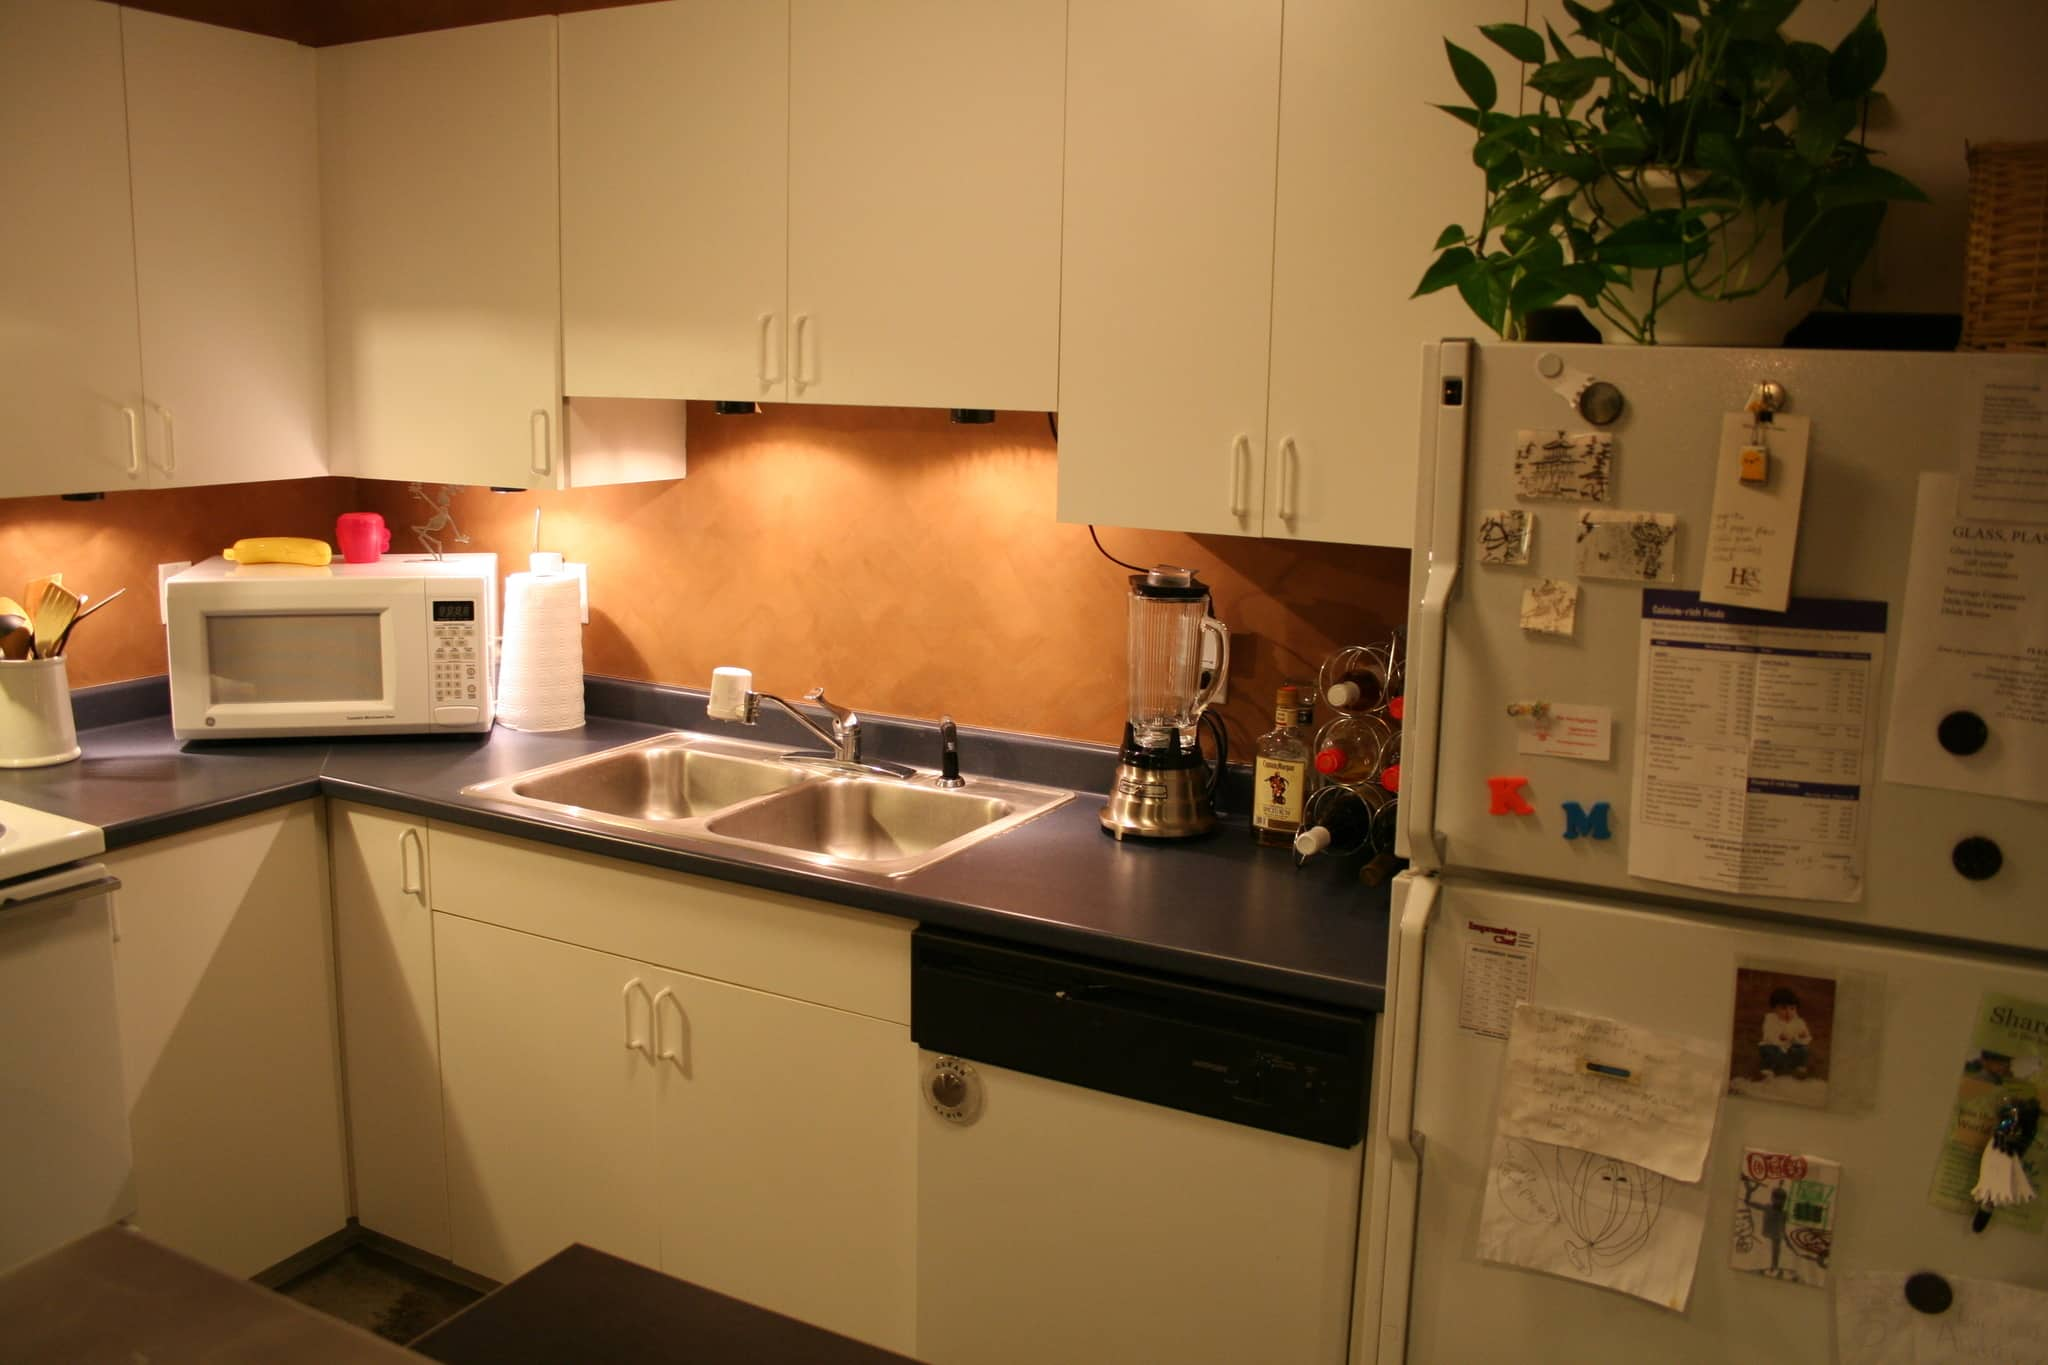 Kate's Creatively Renovated Rental Kitchen: gallery image 3